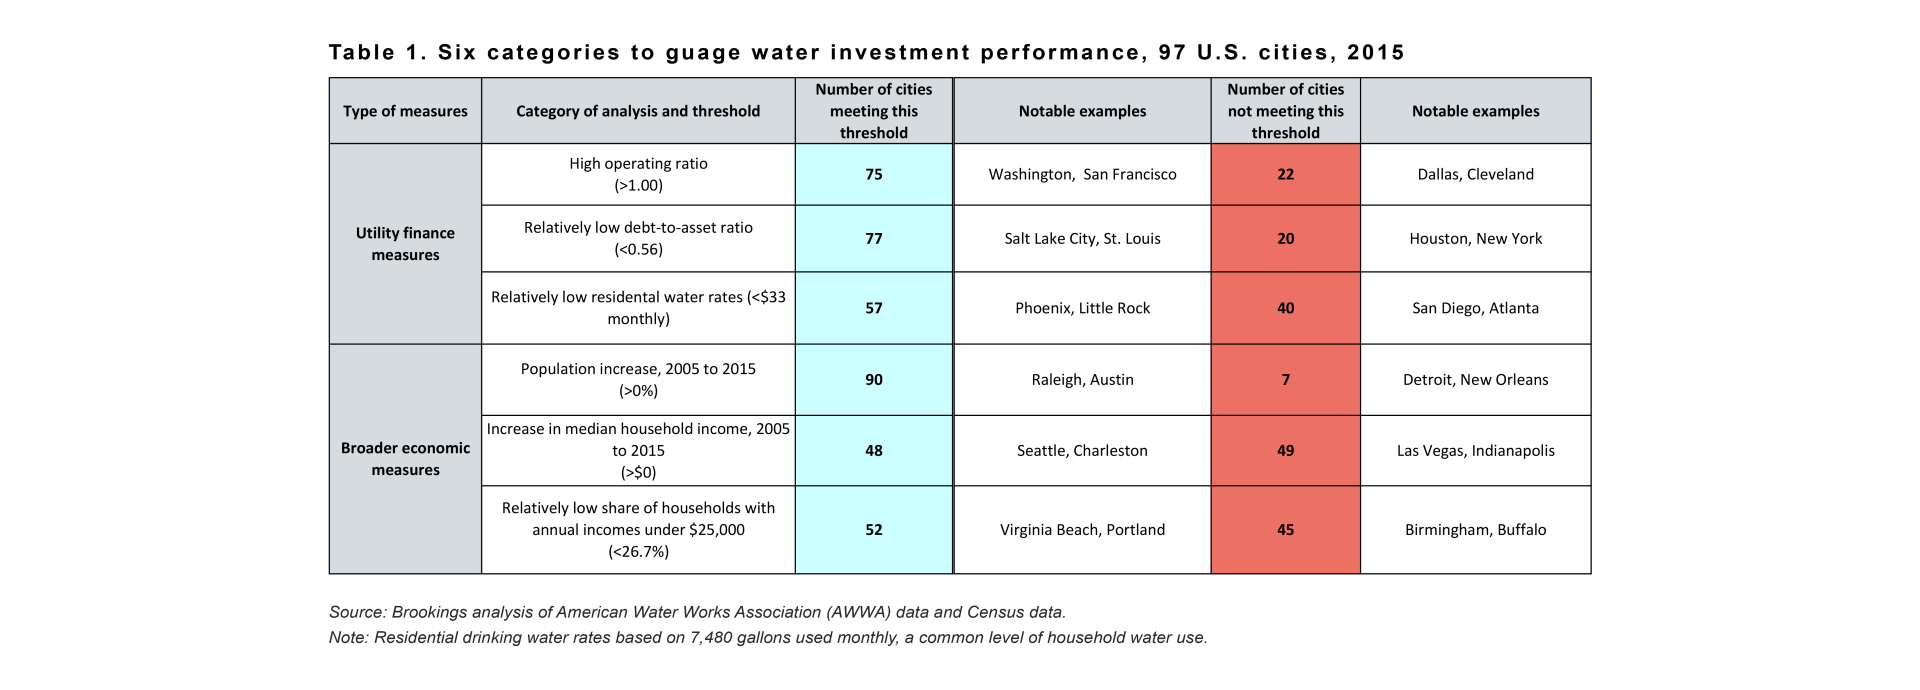 metro_20161213_waterinvestbrief_table 1-1